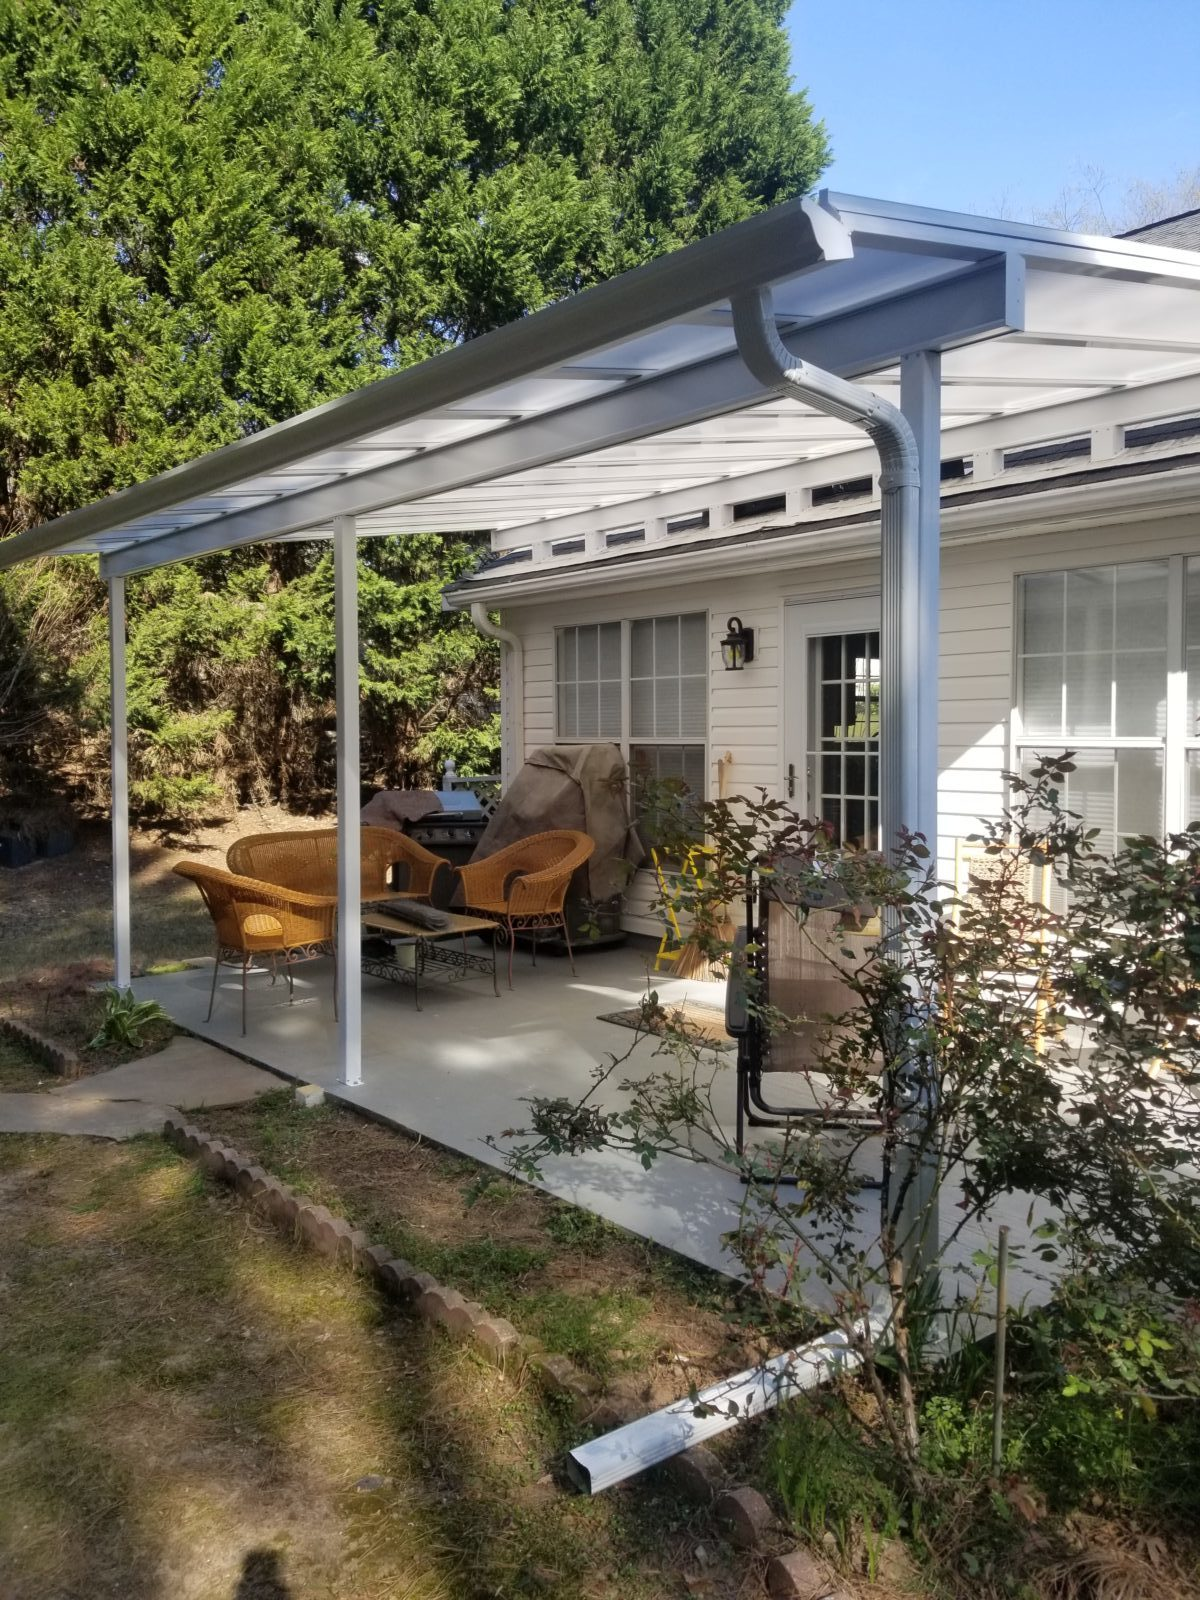 brightcovers patio covers awnings